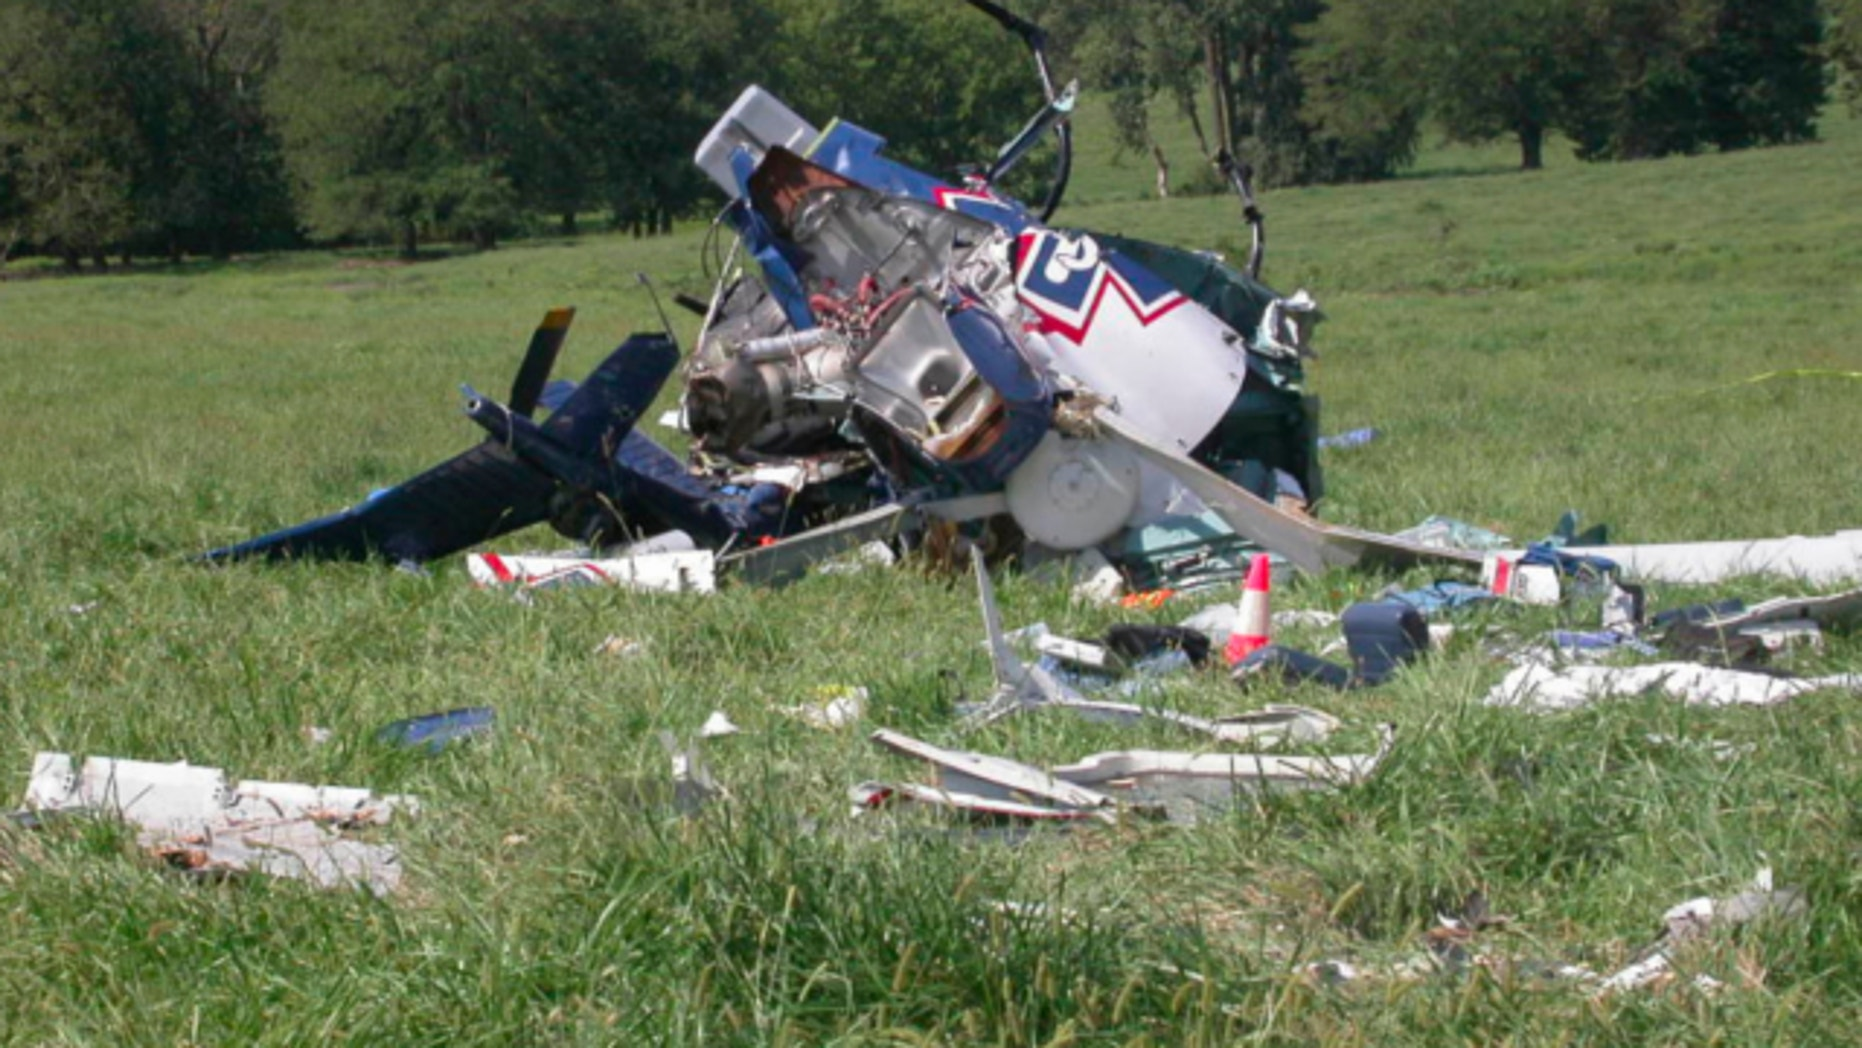 Aug. 26, 2011: This photo provided by the National Transportation Safety Board, shows the wreckage of a helicopter that crashed near Mosby, Mo.